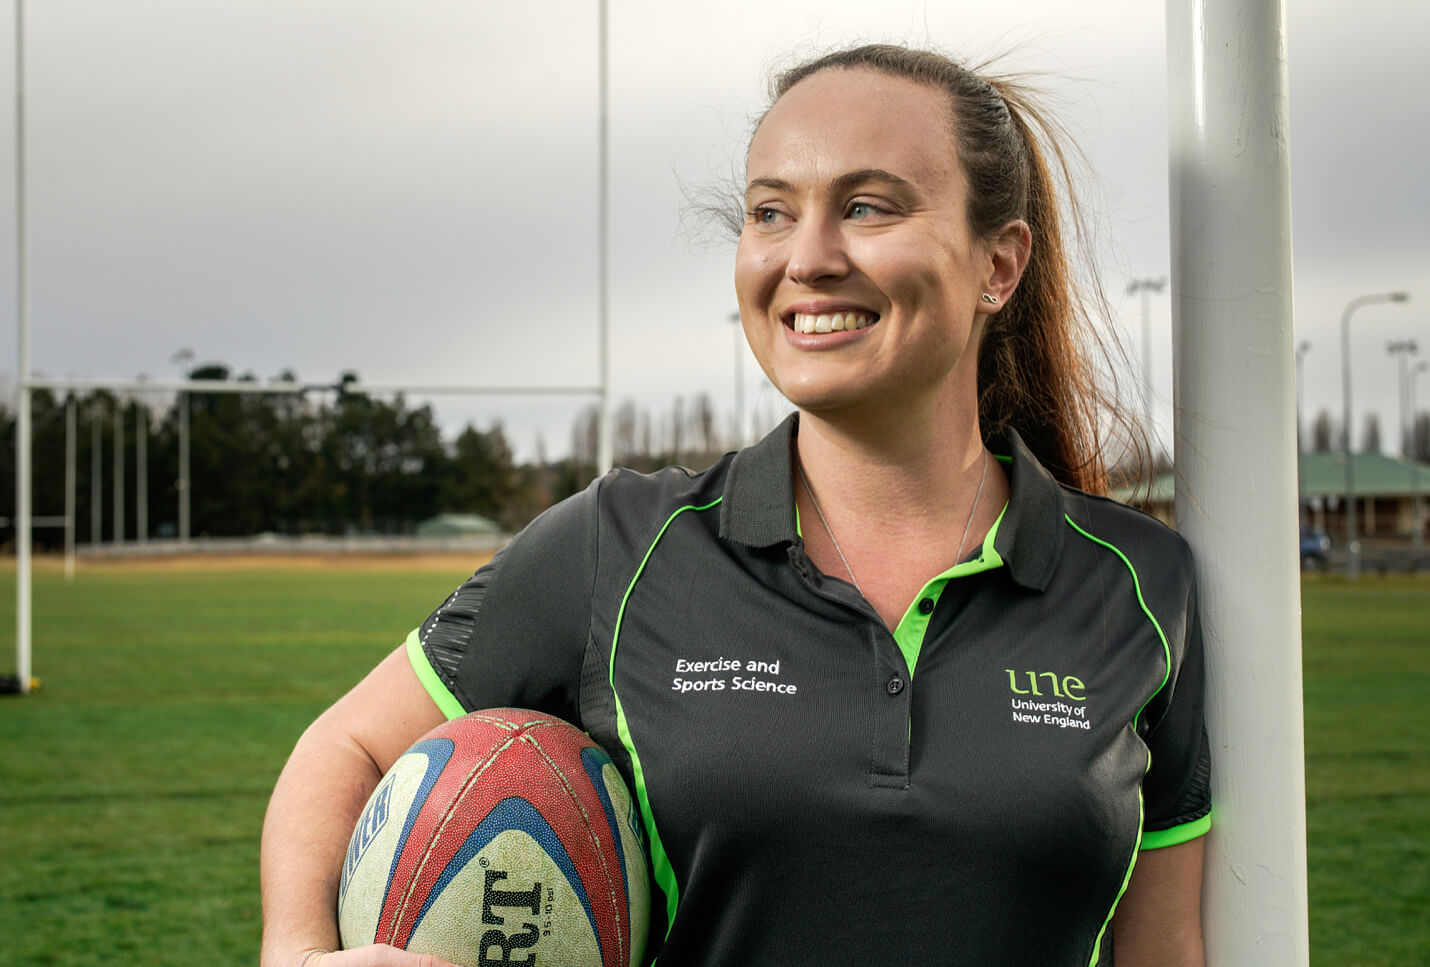 Dr Cloe Cummins standing on a football field, holding a football while wearing her UNE Exercise and Sports Science uniform